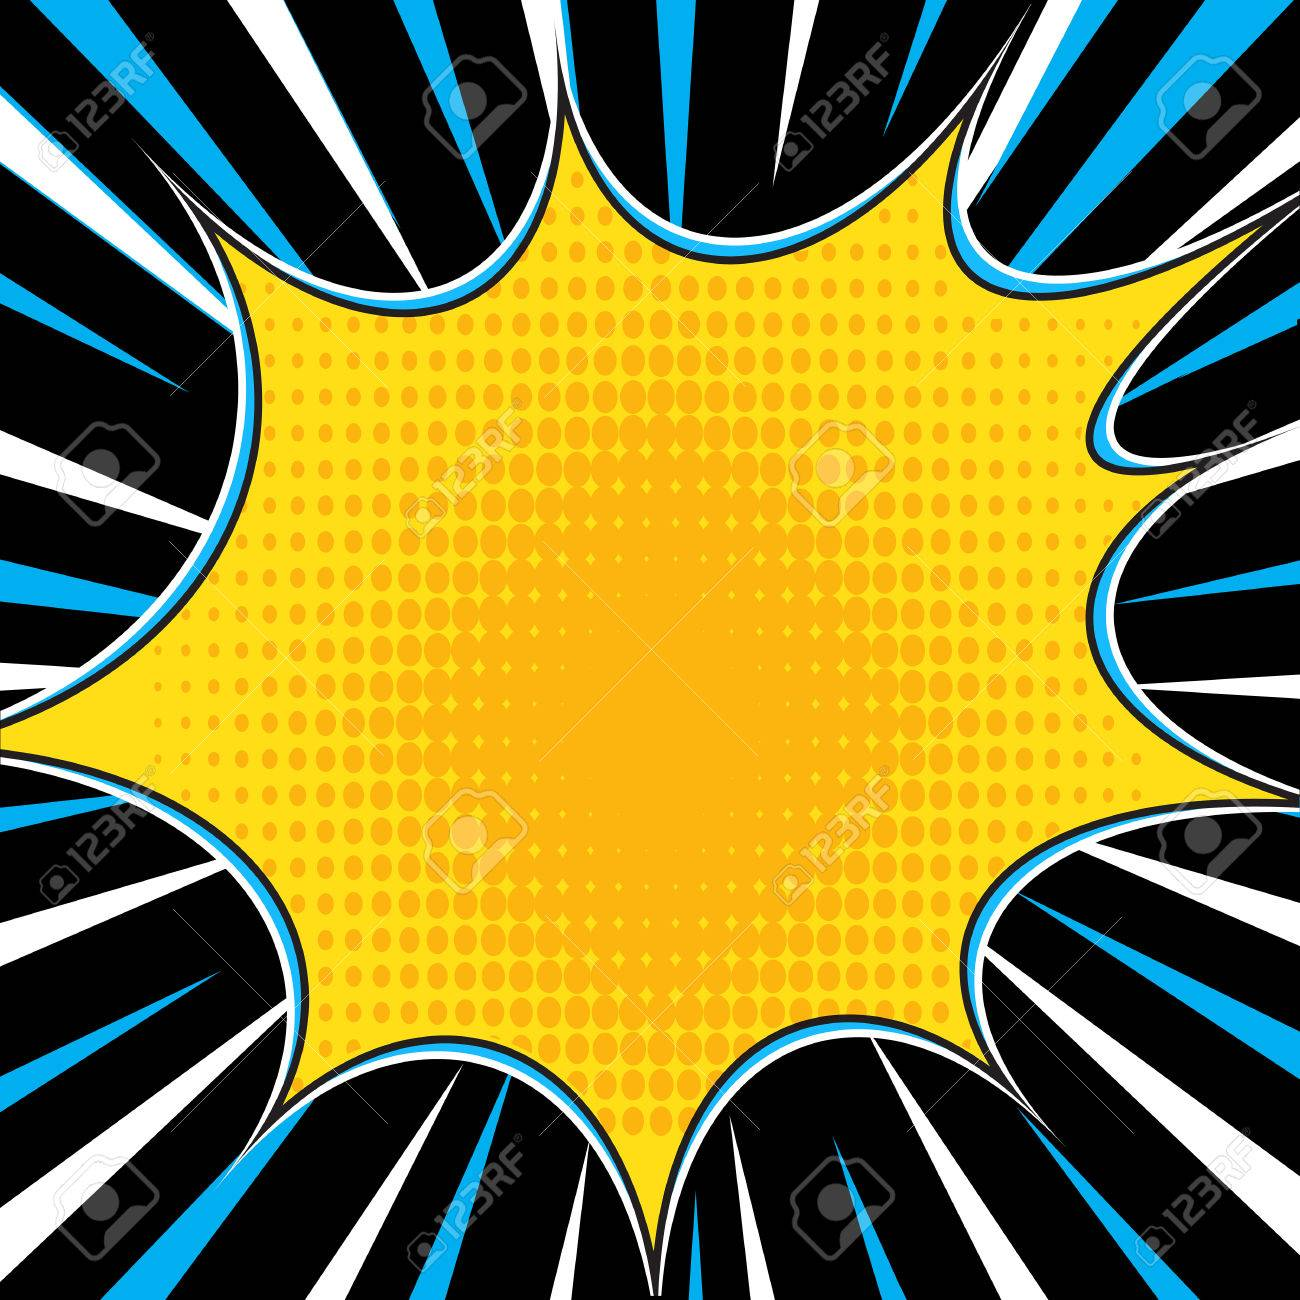 Comic Book Explosion Superhero Pop Art Style Radial Lines Background ...